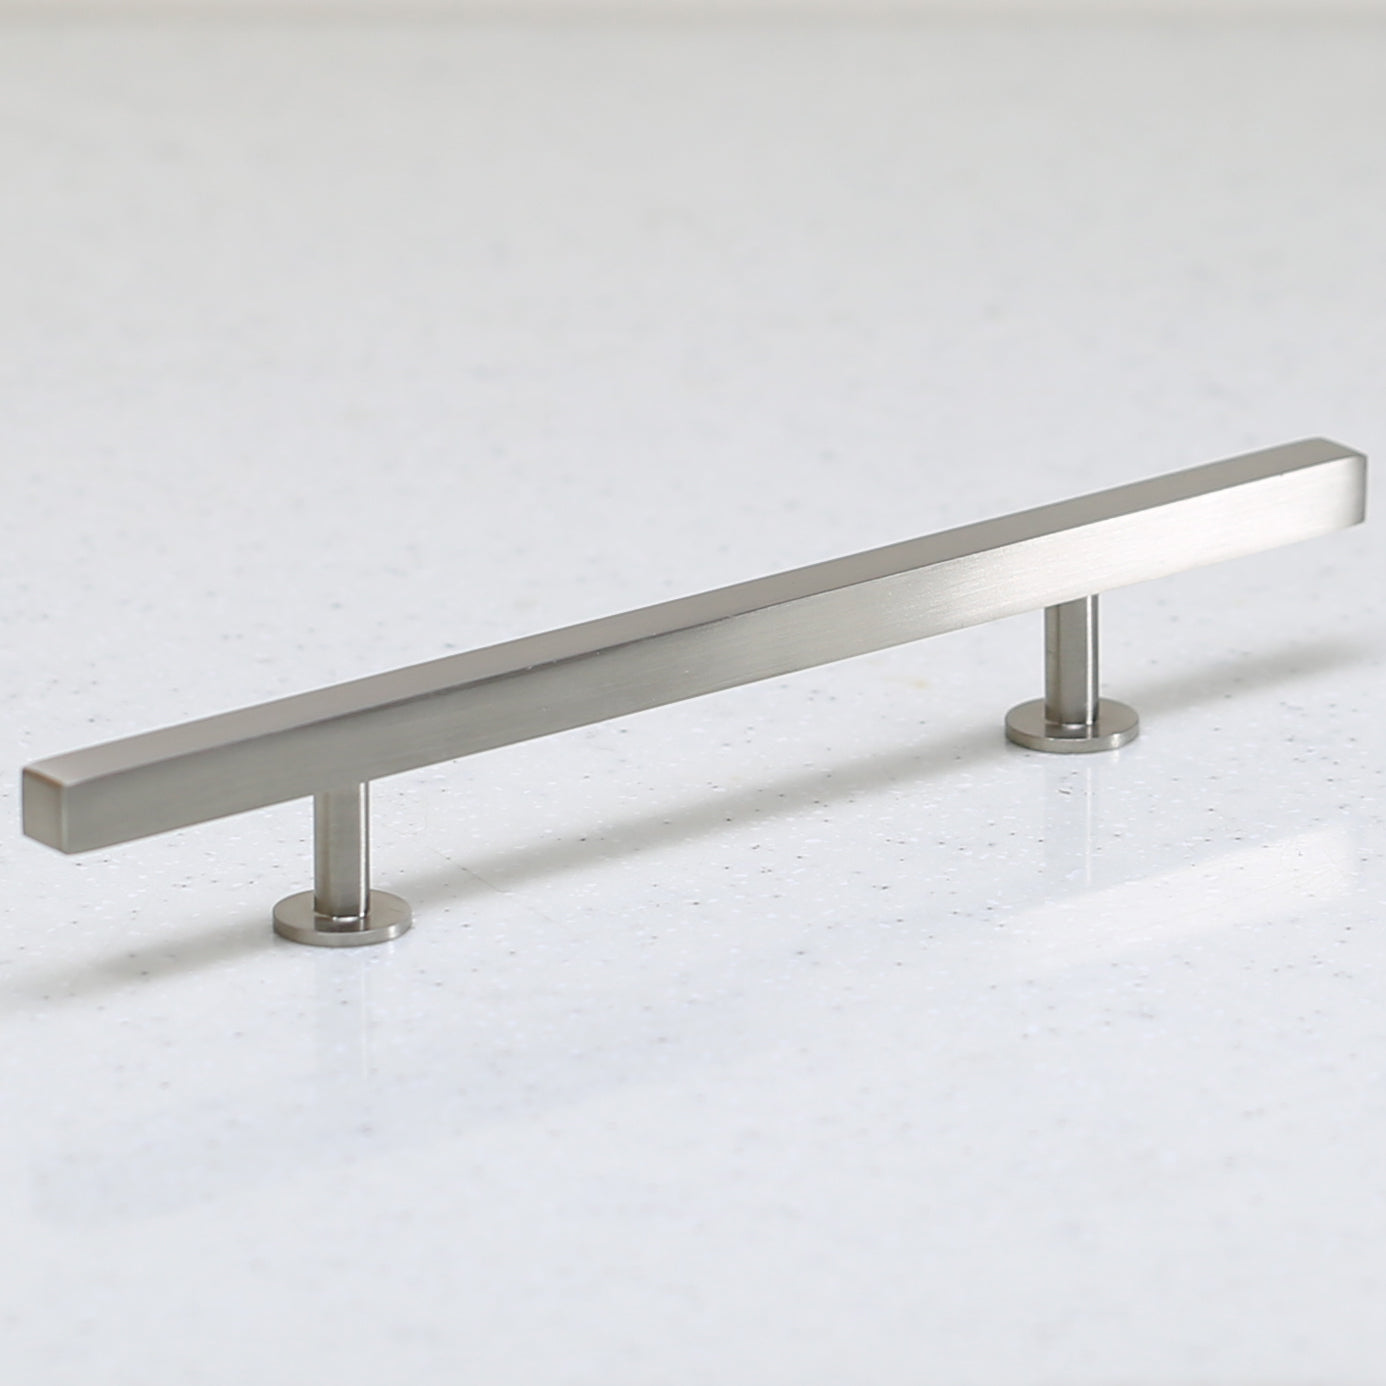 "The Vouvant Collection Pull - 128mm Center to Center (5"") - Satin Nickel - Handle Pull Decorative Hardware"